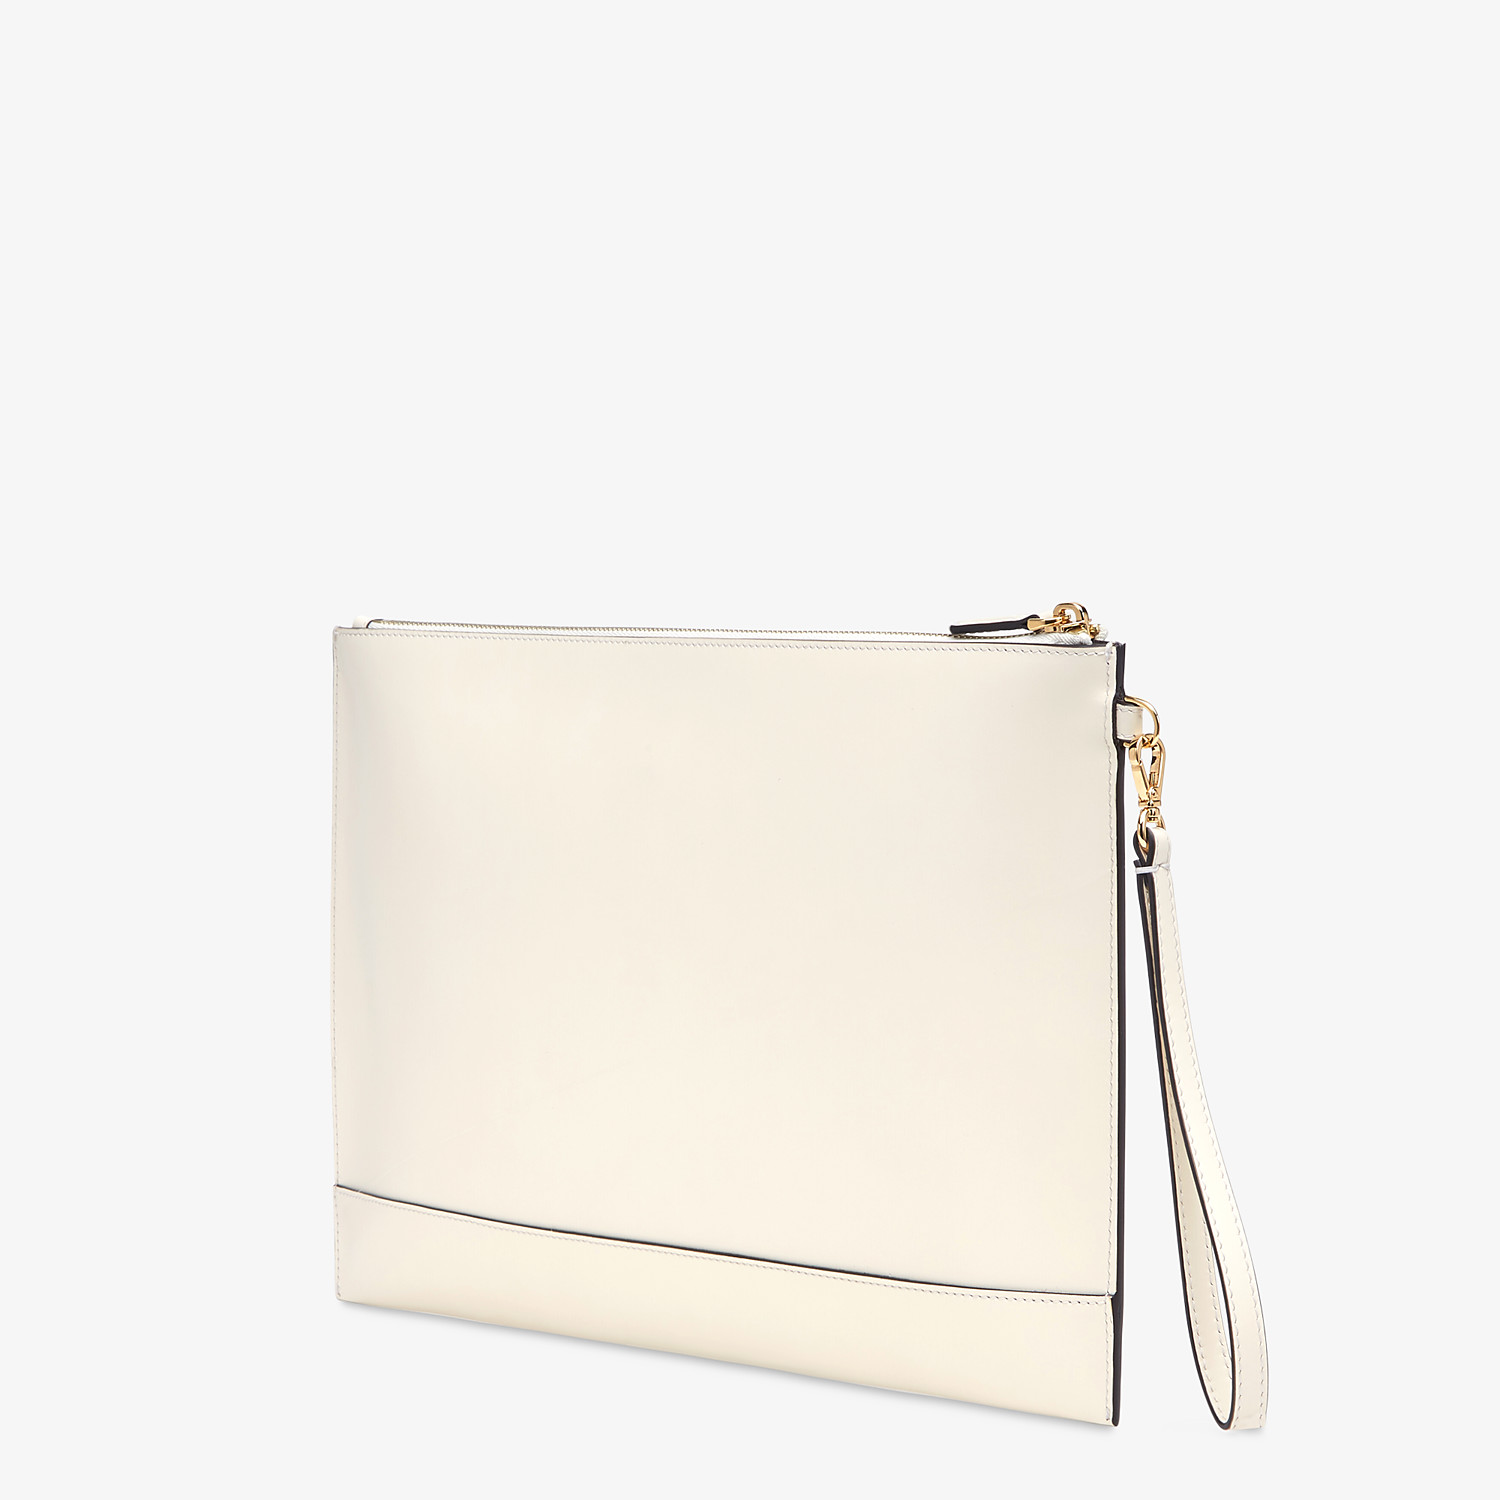 FENDI LARGE FLAT POUCH - White leather pouch - view 3 detail